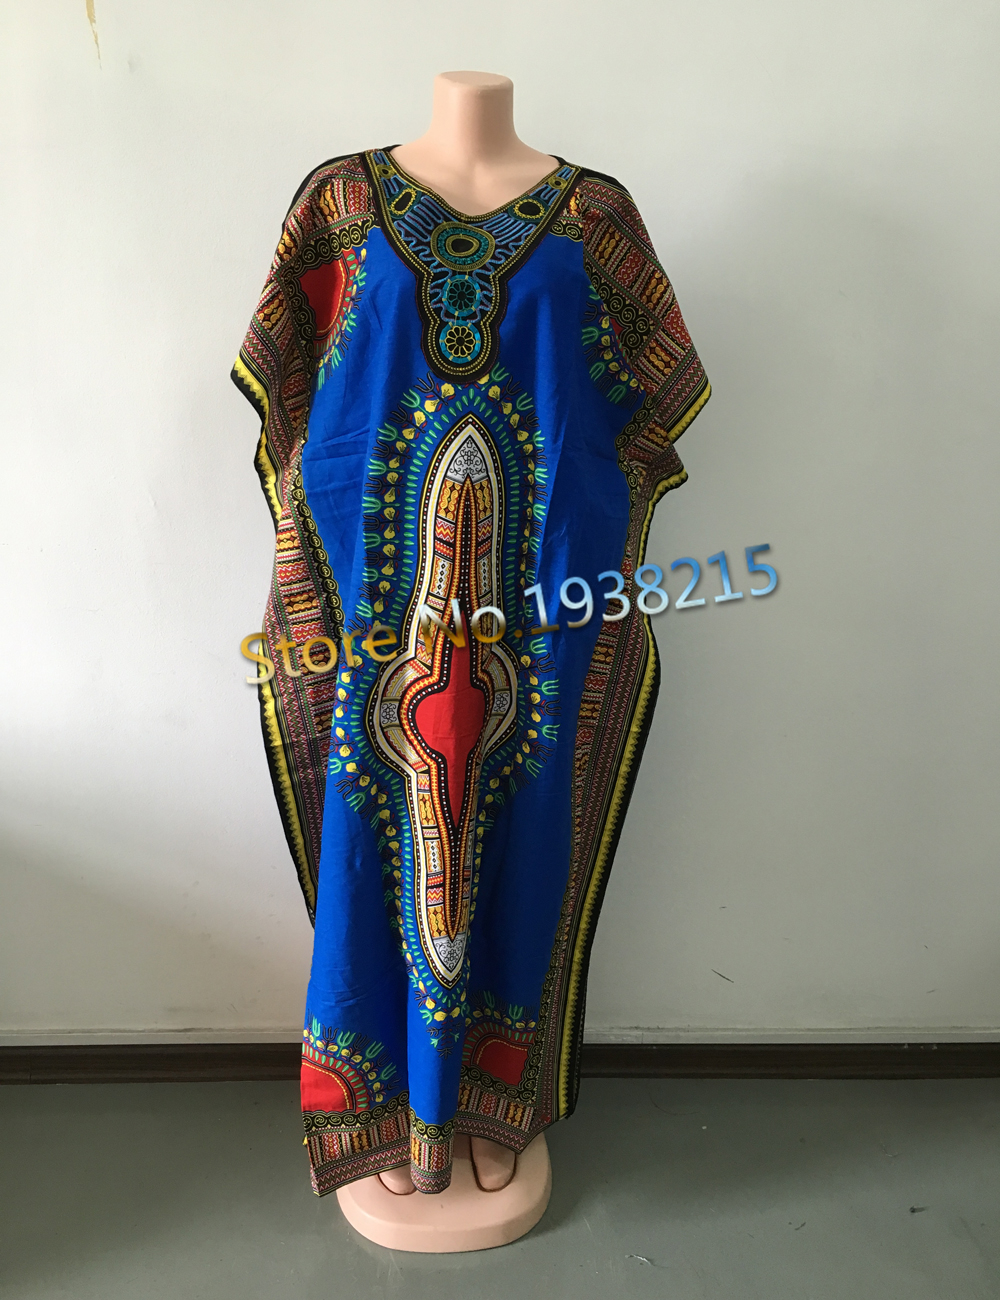 Hot Sale 2017 New Fashion Design Traditional African Clothing Print Dashiki Nice Neck Embroidered African Dresses for Women